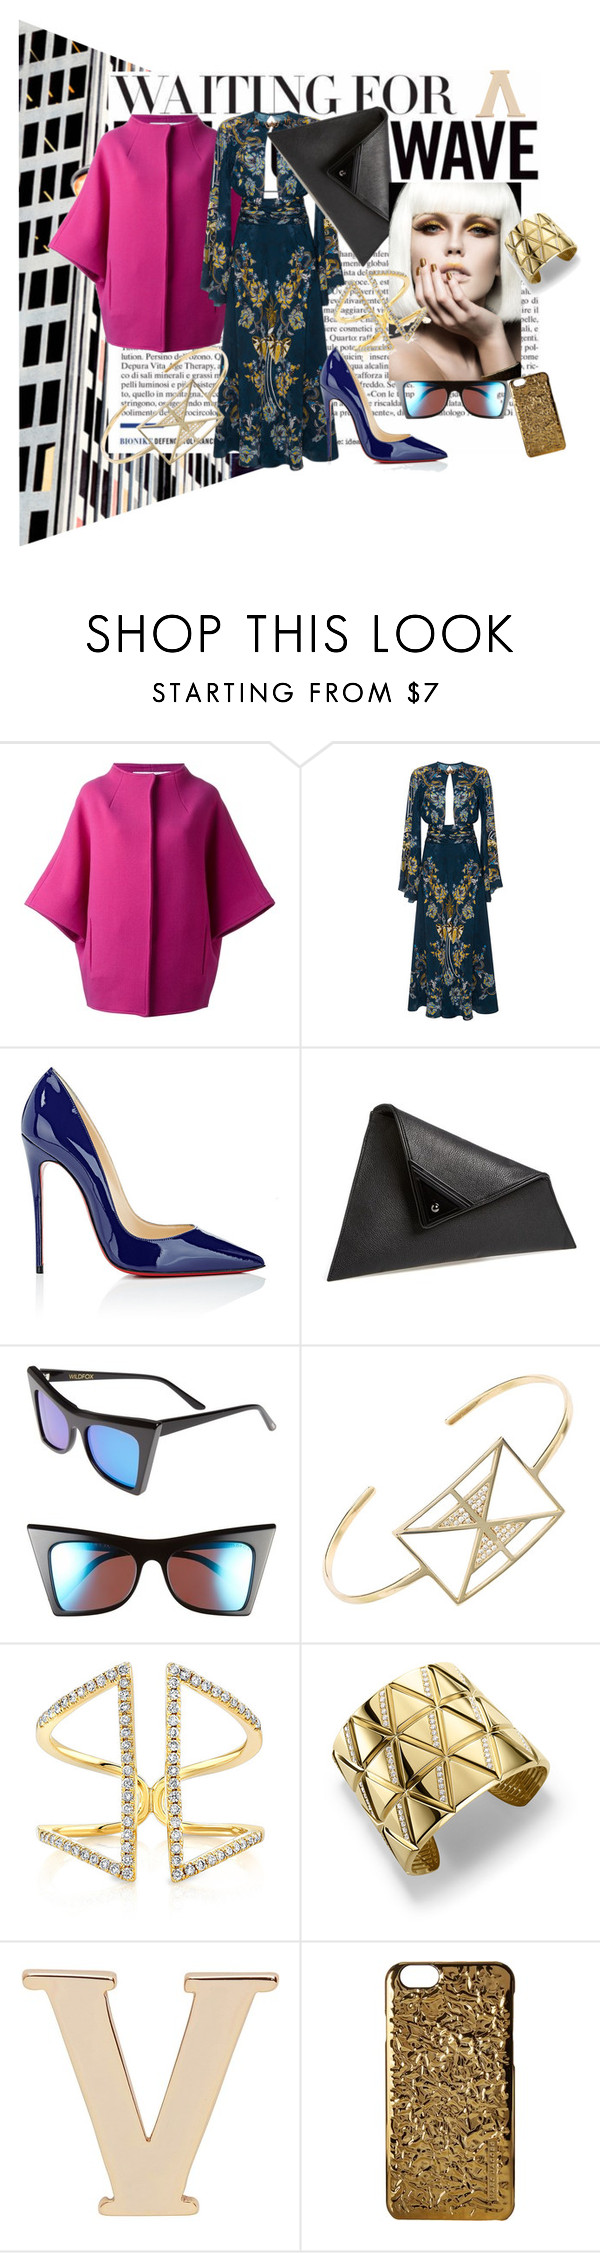 """How to Hail a Cab"" by successisbella ❤ liked on Polyvore featuring Gianluca Capannolo, Roberto Cavalli, Christian Louboutin, Sondra Roberts, Wildfox, Afew Jewels, Anne Sisteron, Marina B, Witchery and Marc Jacobs"